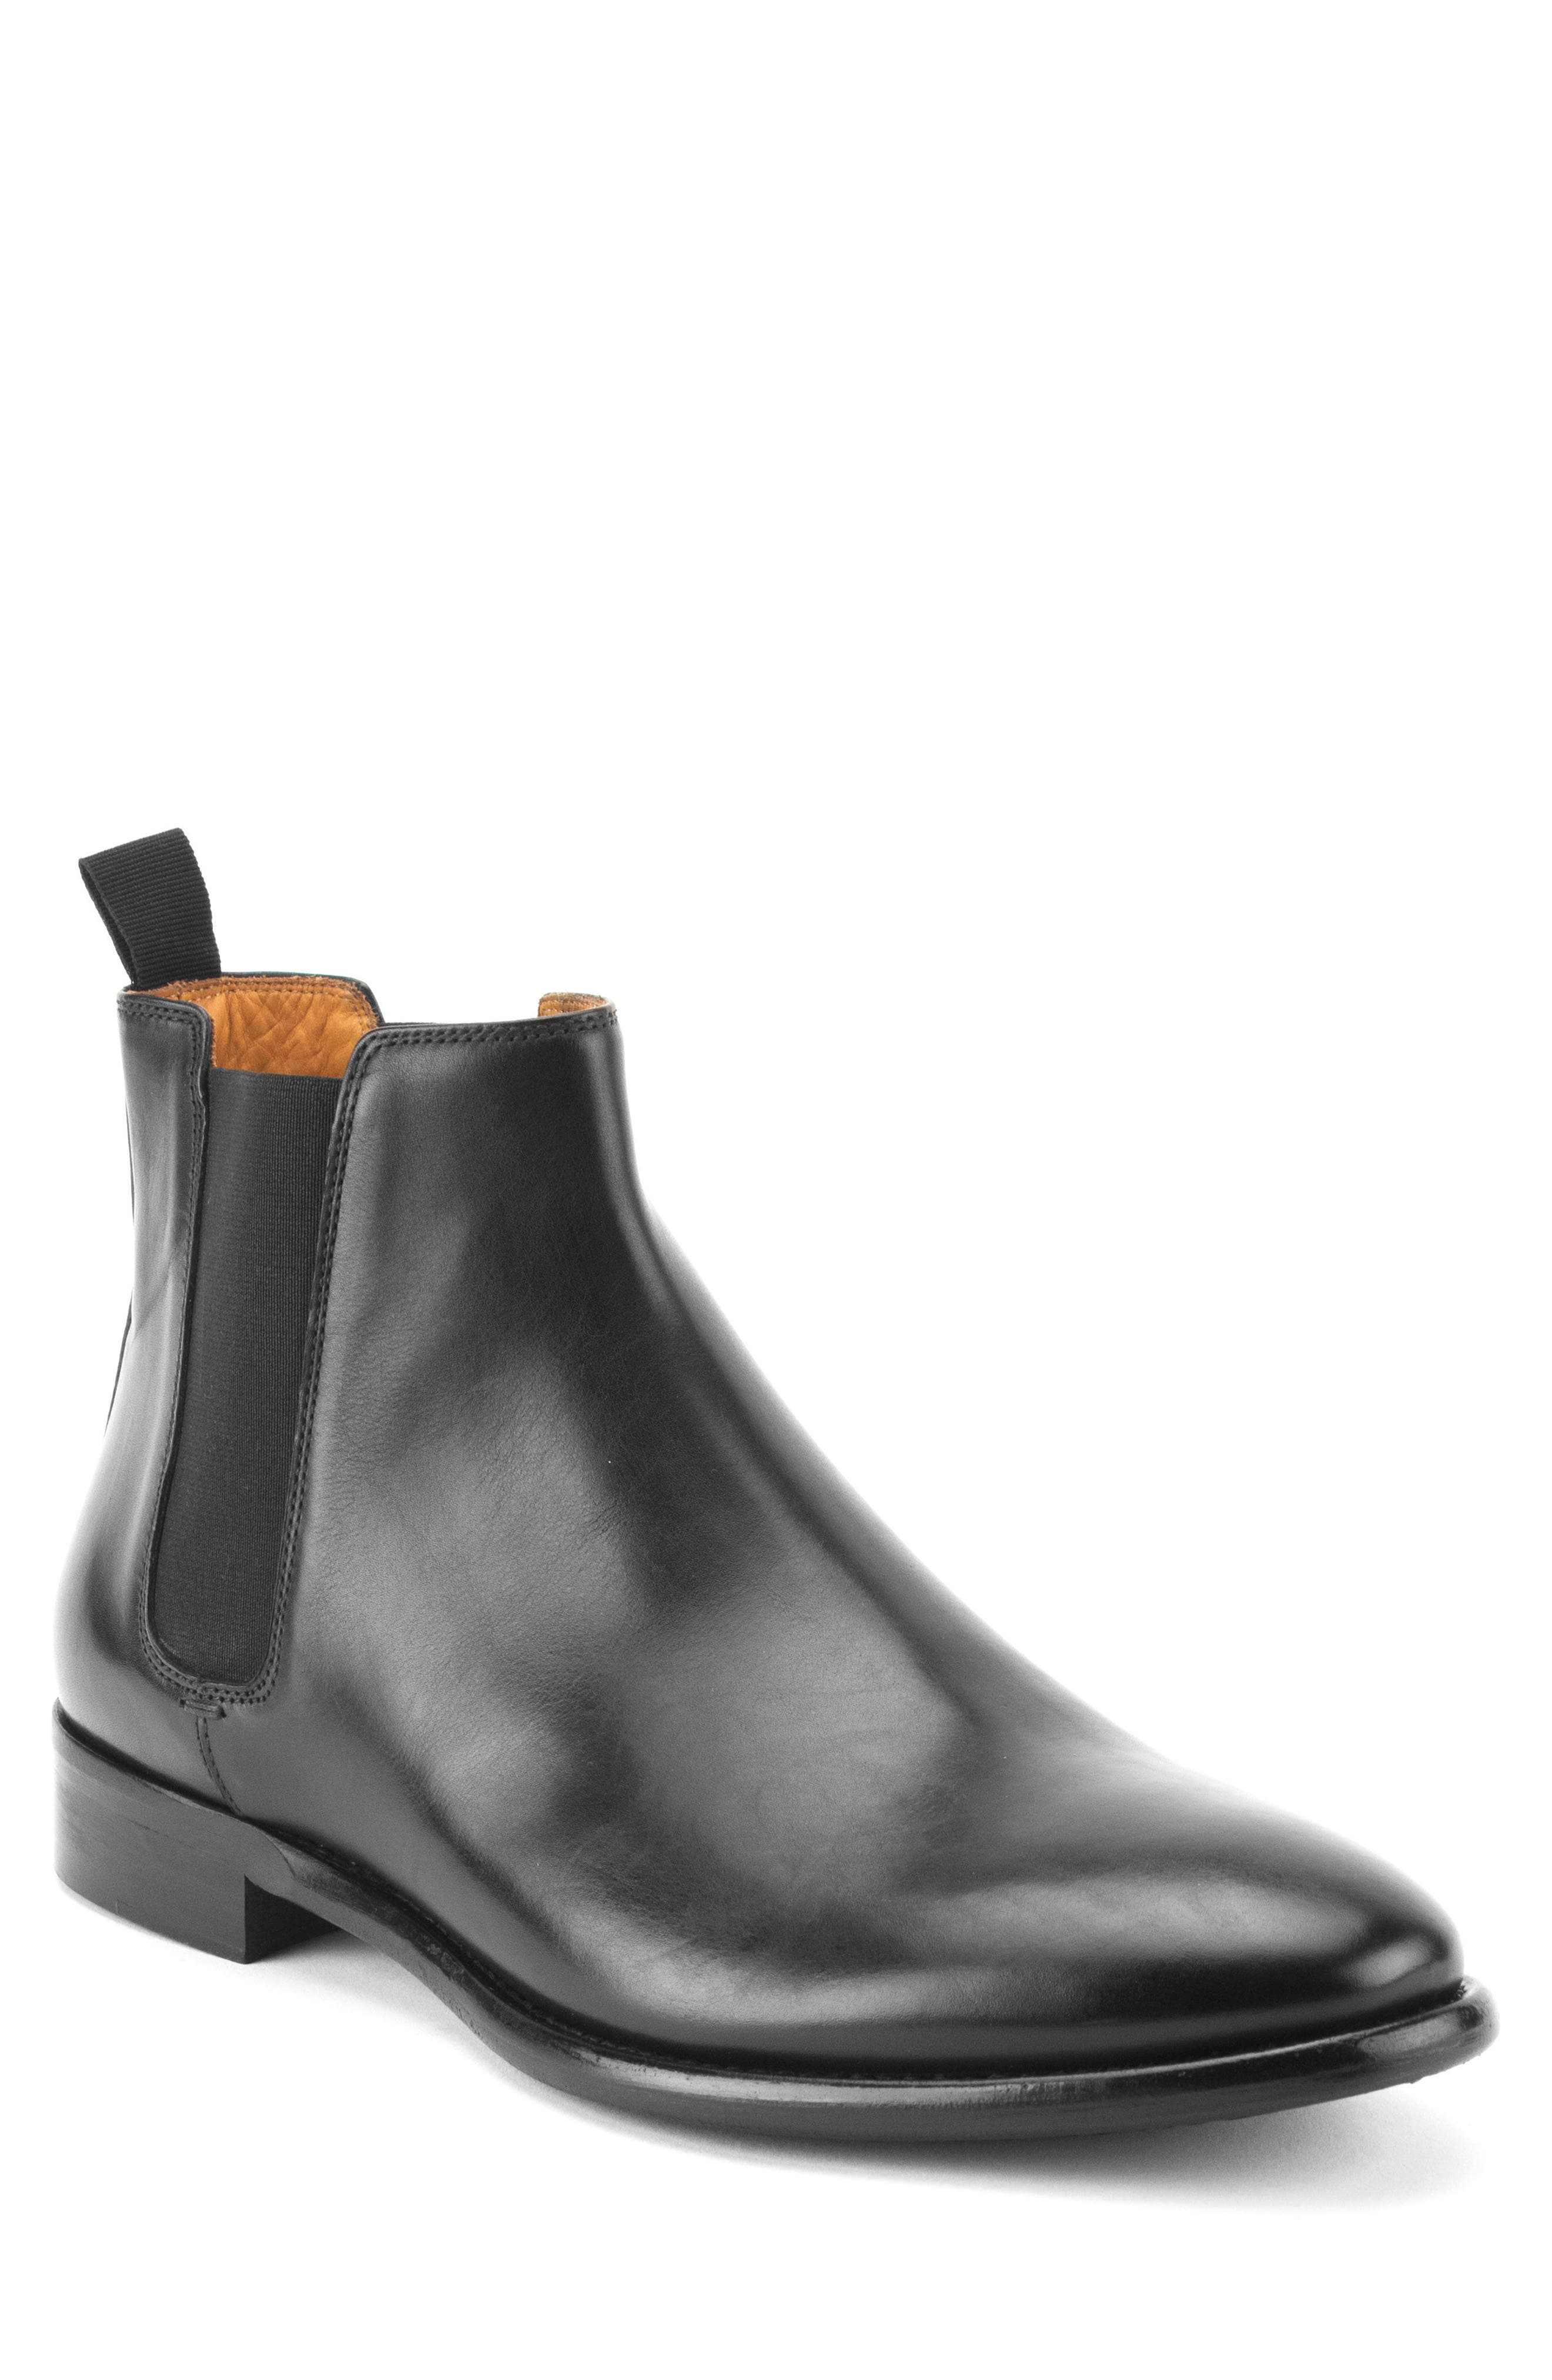 Matthews Chelsea Boot,                         Main,                         color, Black Leather